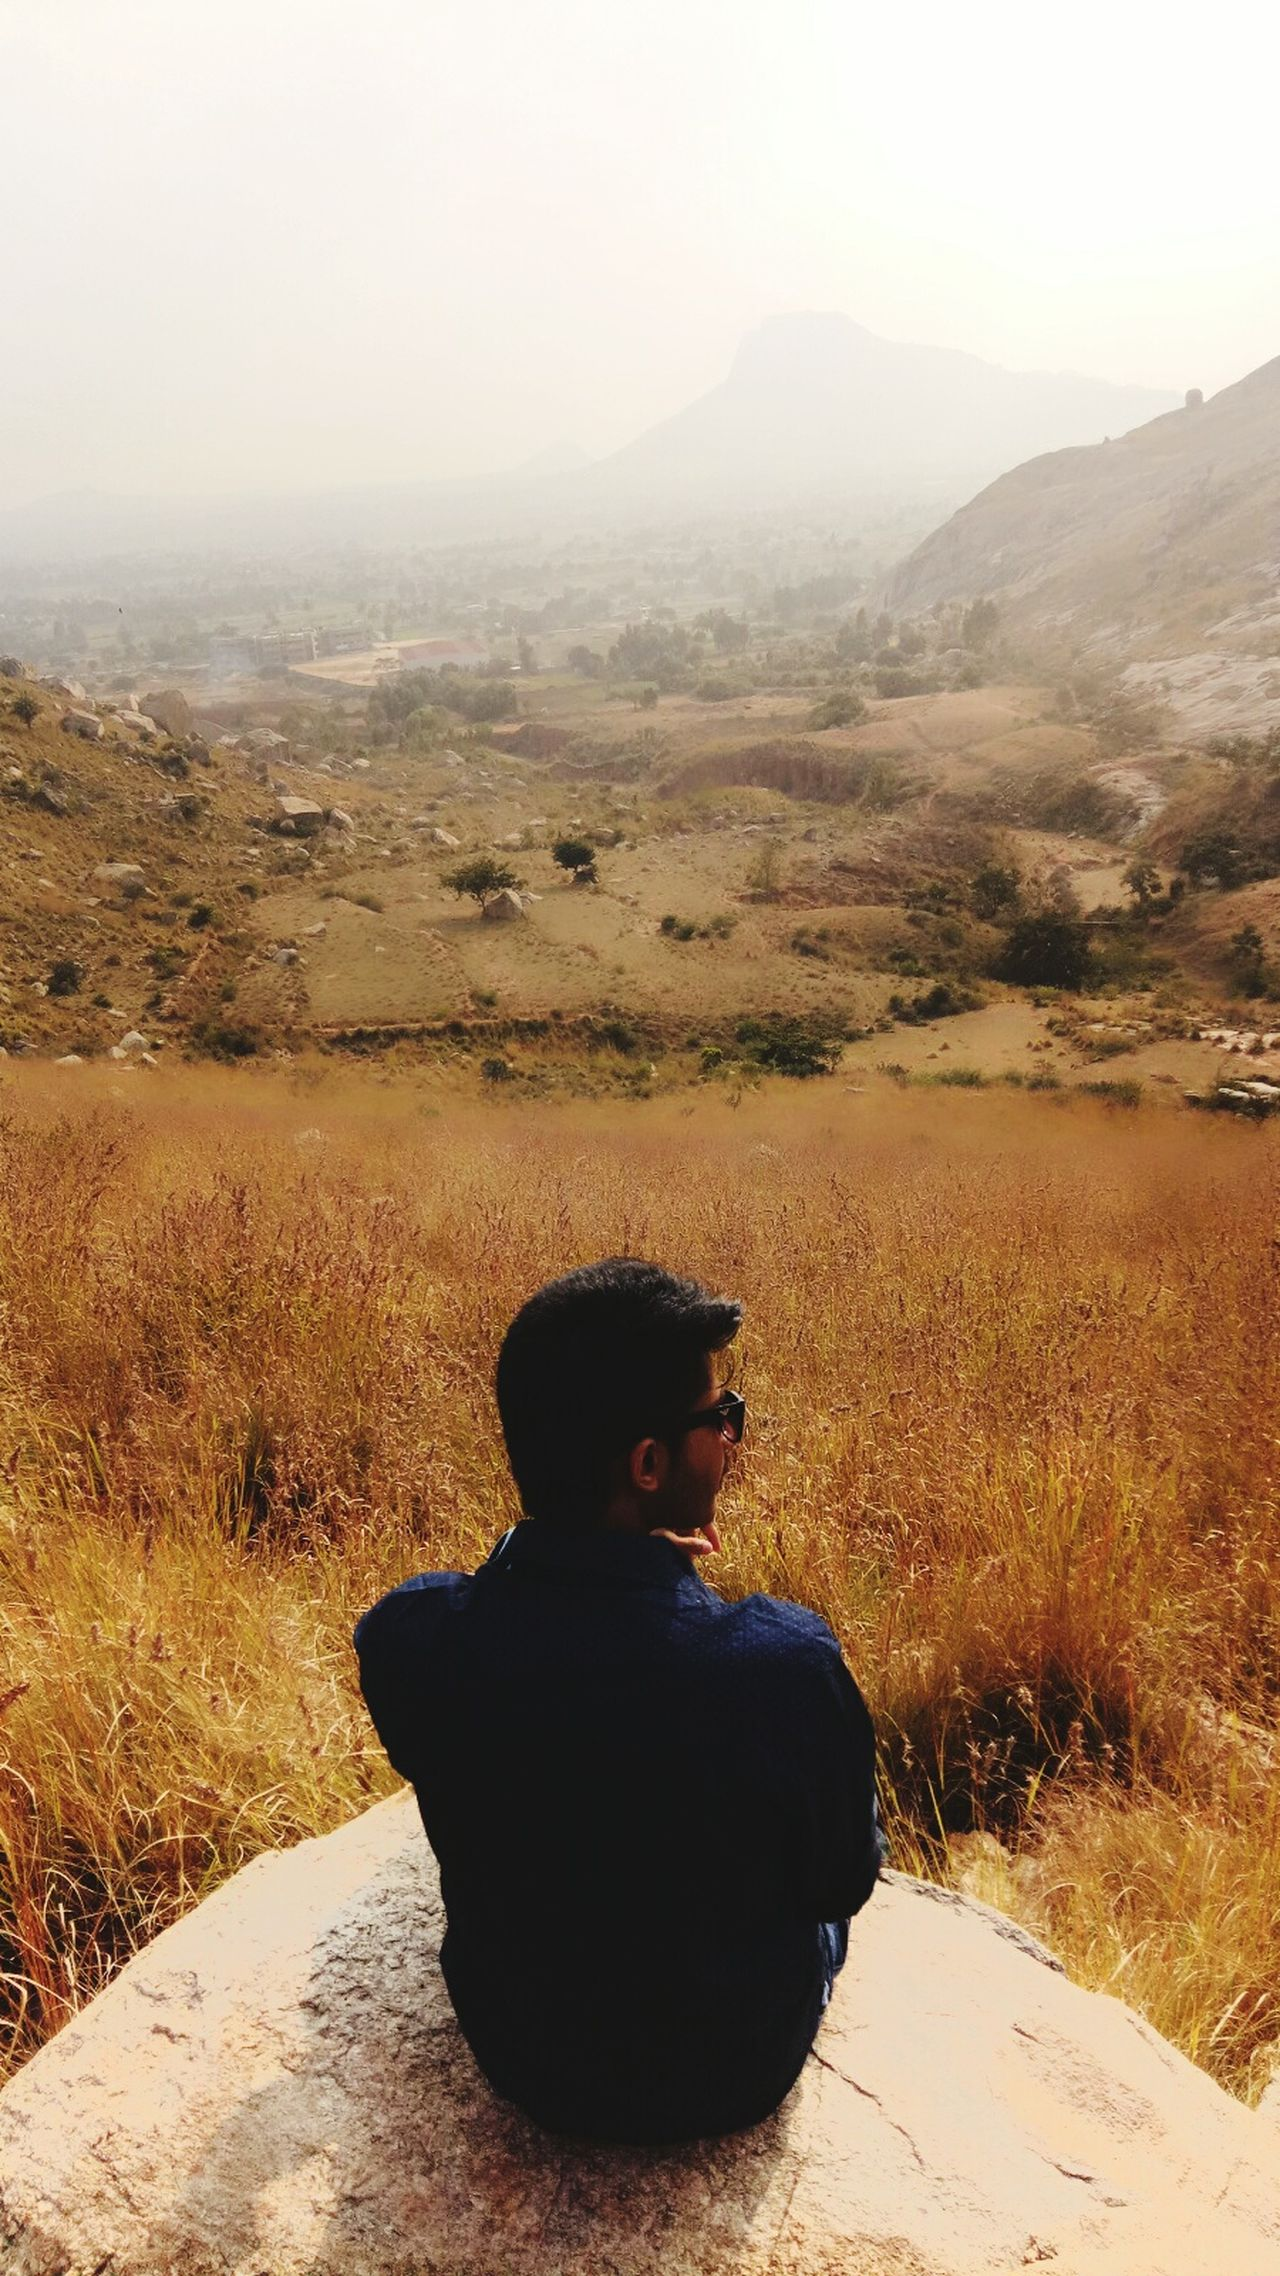 Place where we can find ourselves... Rear View Sitting One Person Adventure Landscape Outdoors Mountain Day Nature One Man Only Sky Goggles Mountain View Sitting Grassland Grassland Under Sunlight Sunshine ☀ Summertime